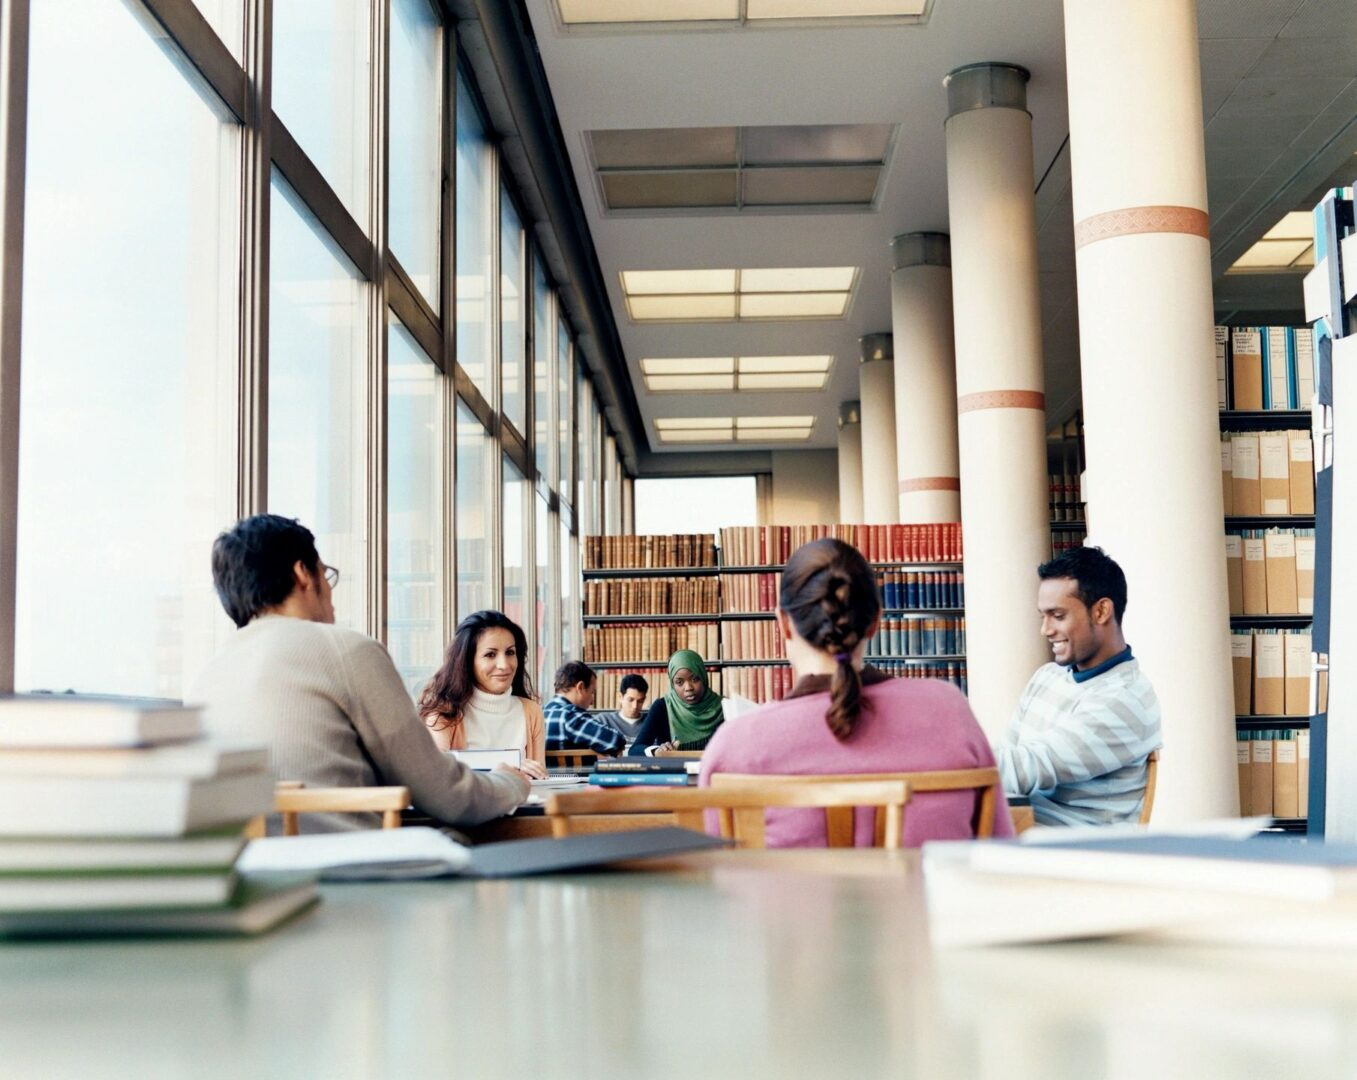 A diverse group of students meeting in a library.